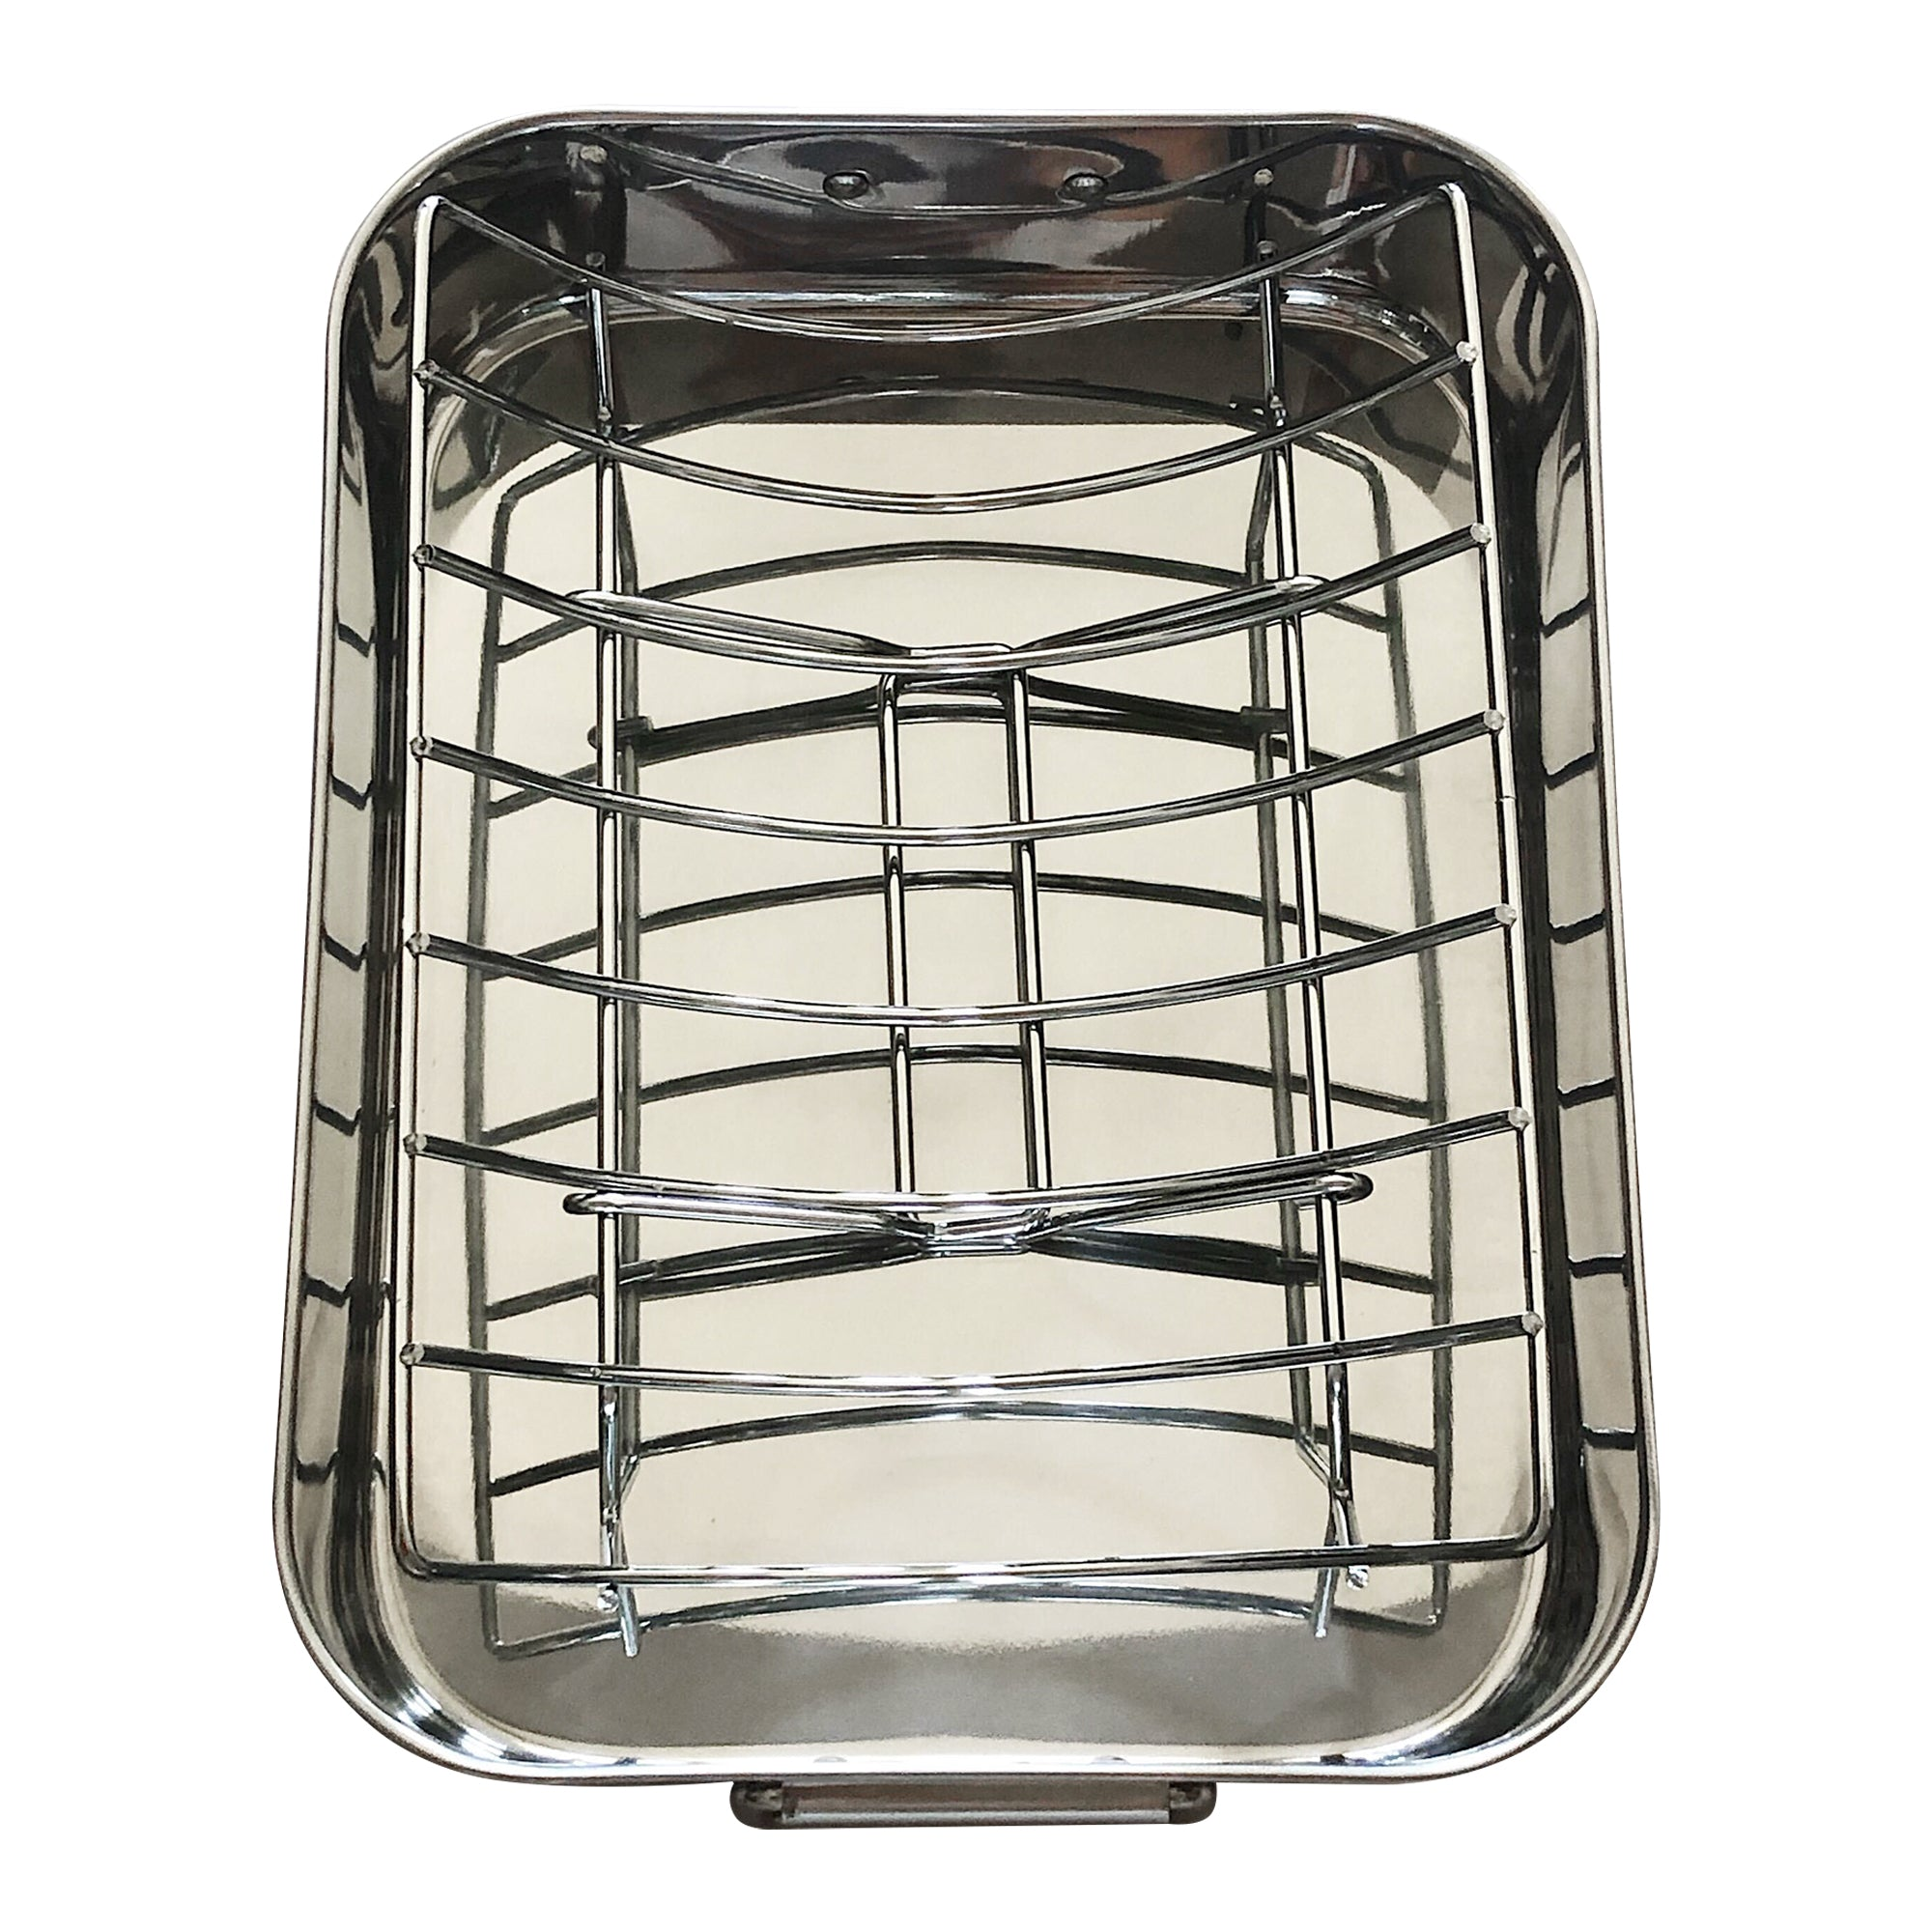 Stainless Steel Roaster Pan with Serving Rack Box